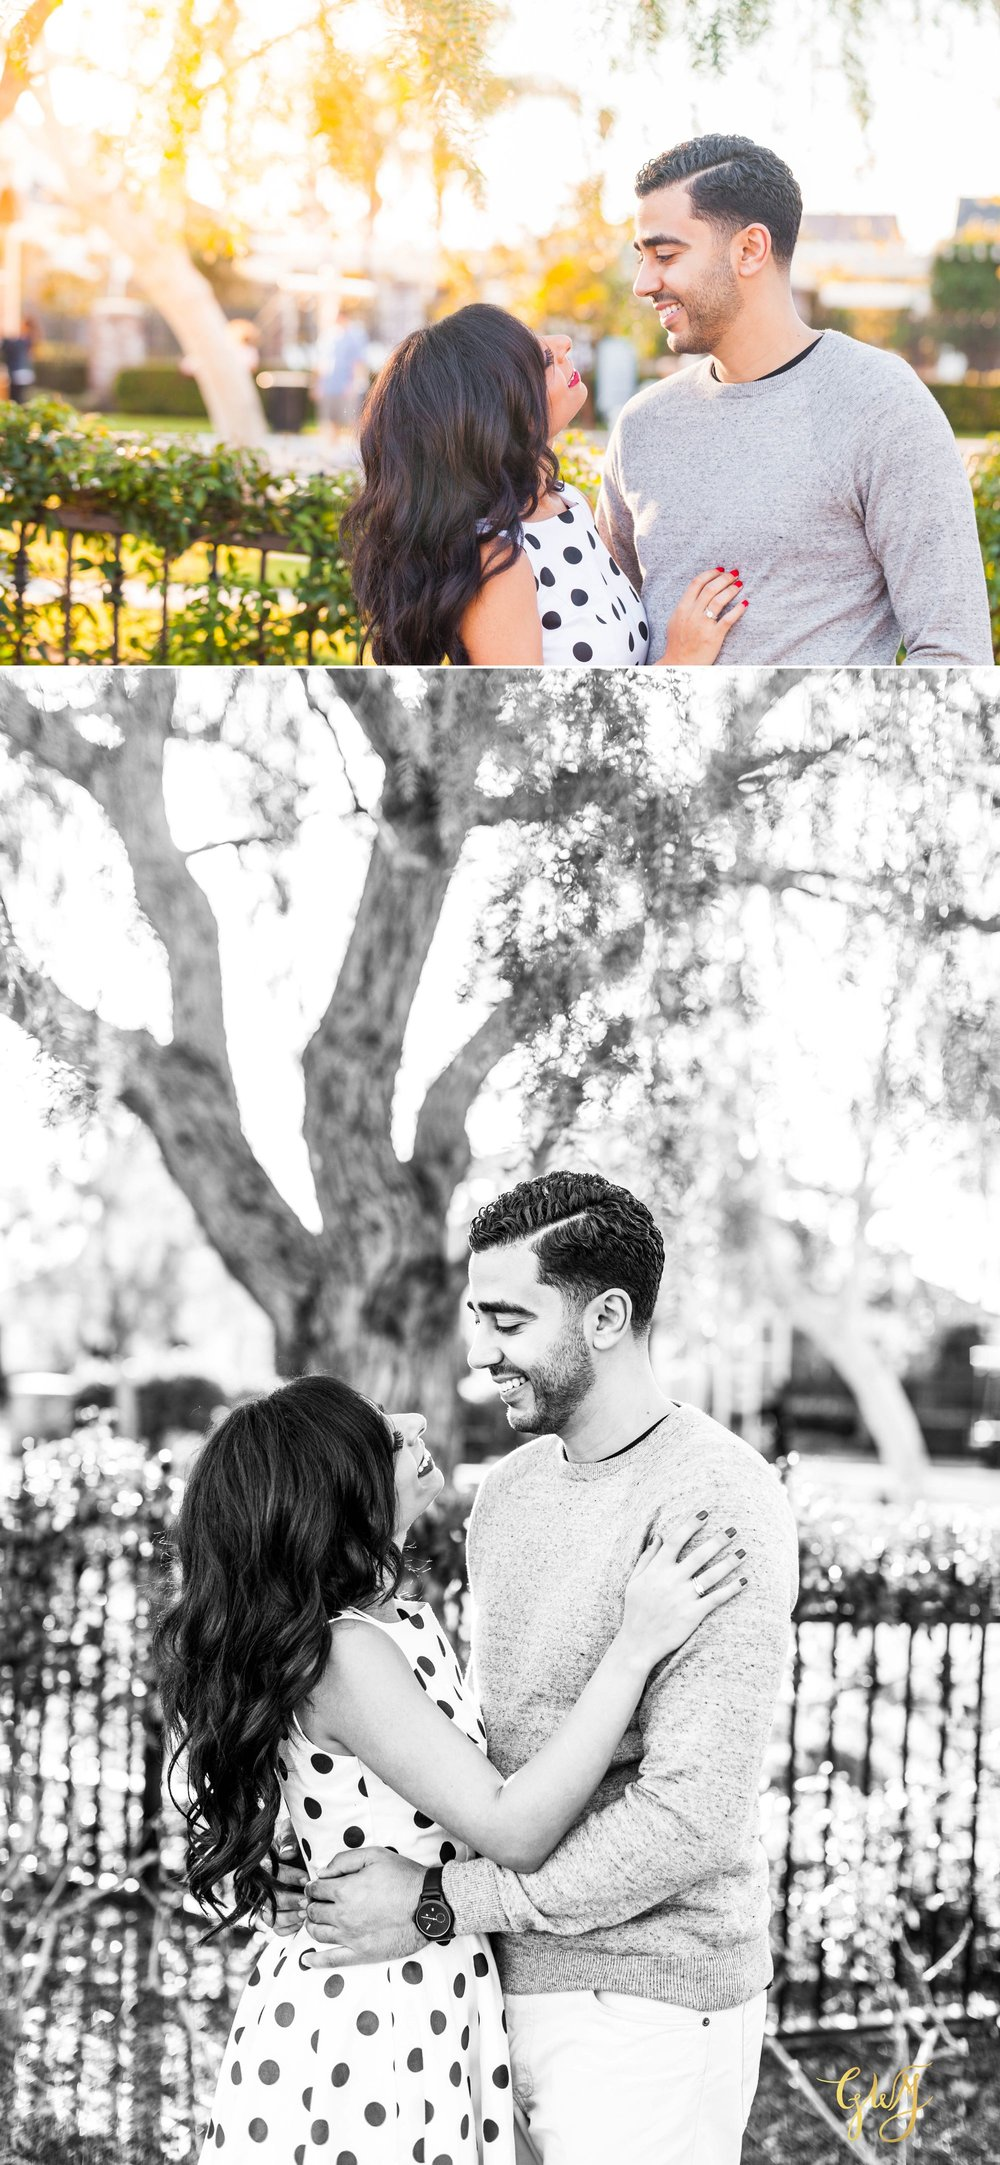 Joy + Mena Tustin Downtown Santa Ana 4th Street Market Coptic Picnic Themed Engagement by Glass Woods Media 2.jpg